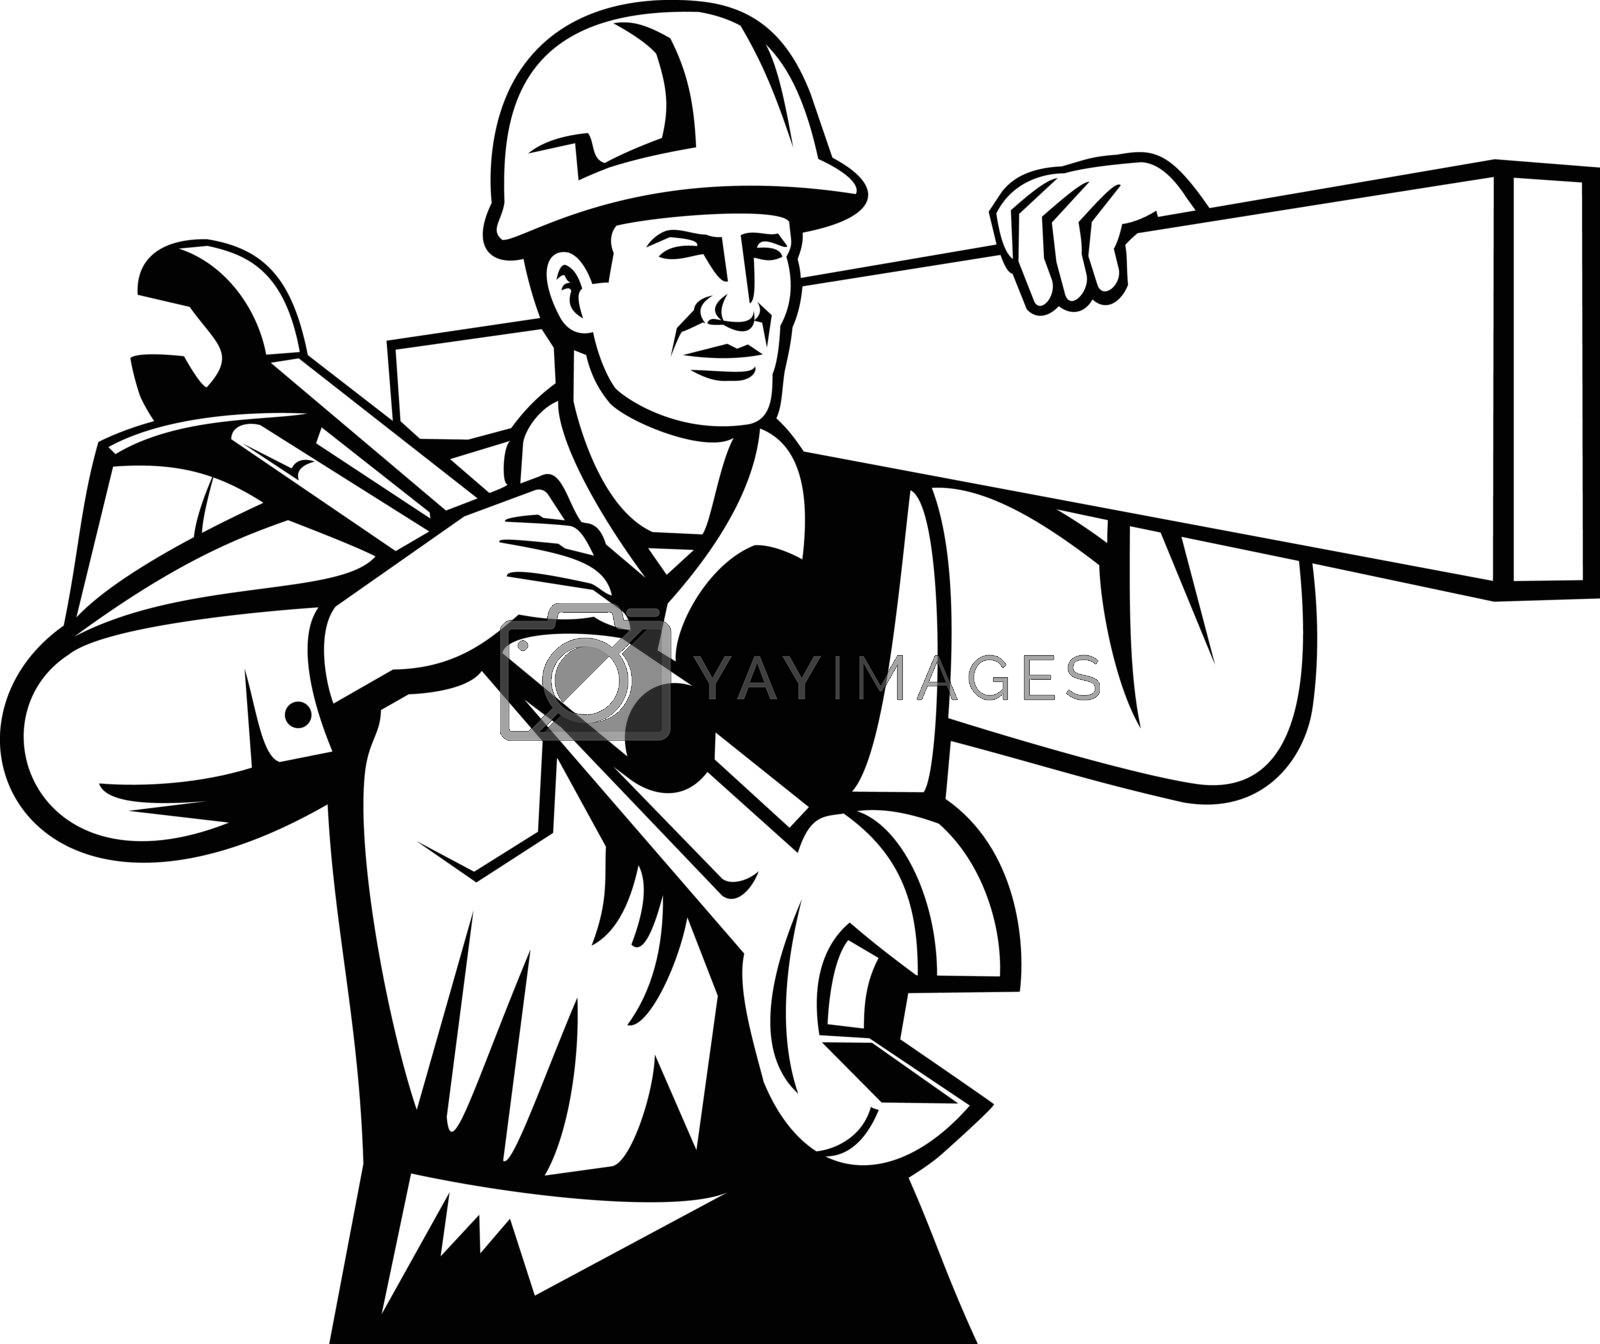 Black and white illustration of a handyman, builder or tradesman worker with hard hat carrying spanner wrench and spade viewed from front on isolated background done in retro style.